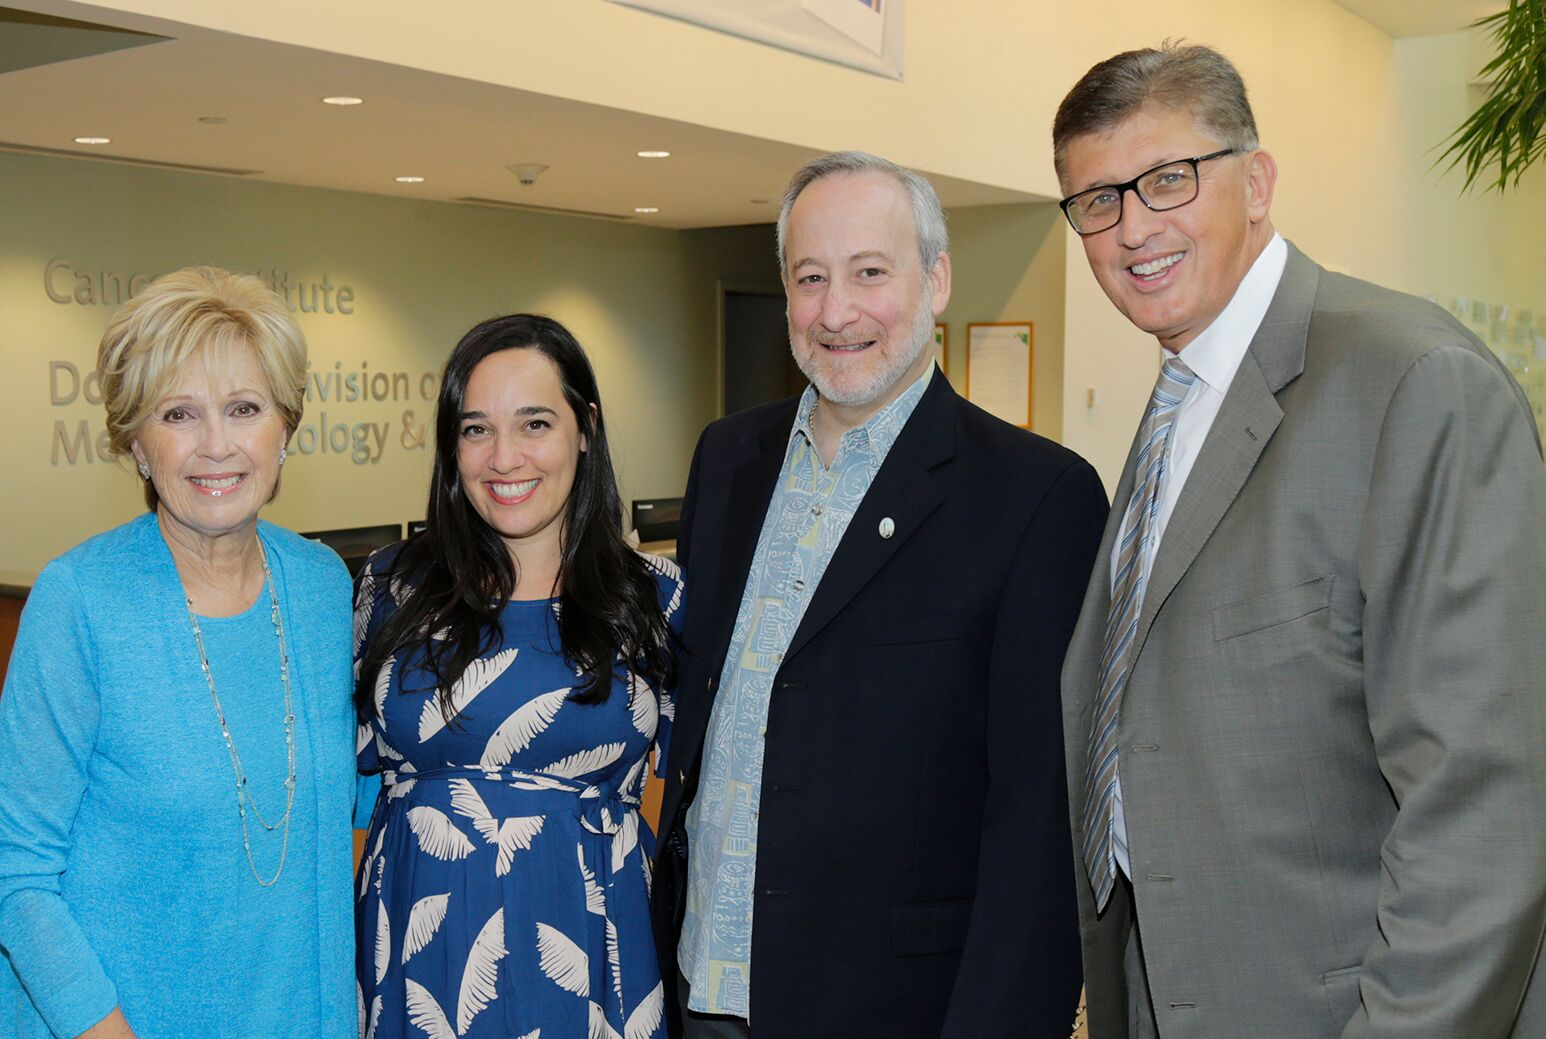 From left: Caroline Monti Saladino, keynote speaker Nancy Borowick, Northwell executive Frank Danza, and Dr. Richard Barakat at Northwell's annual Cancer Survivors' Day celebration.